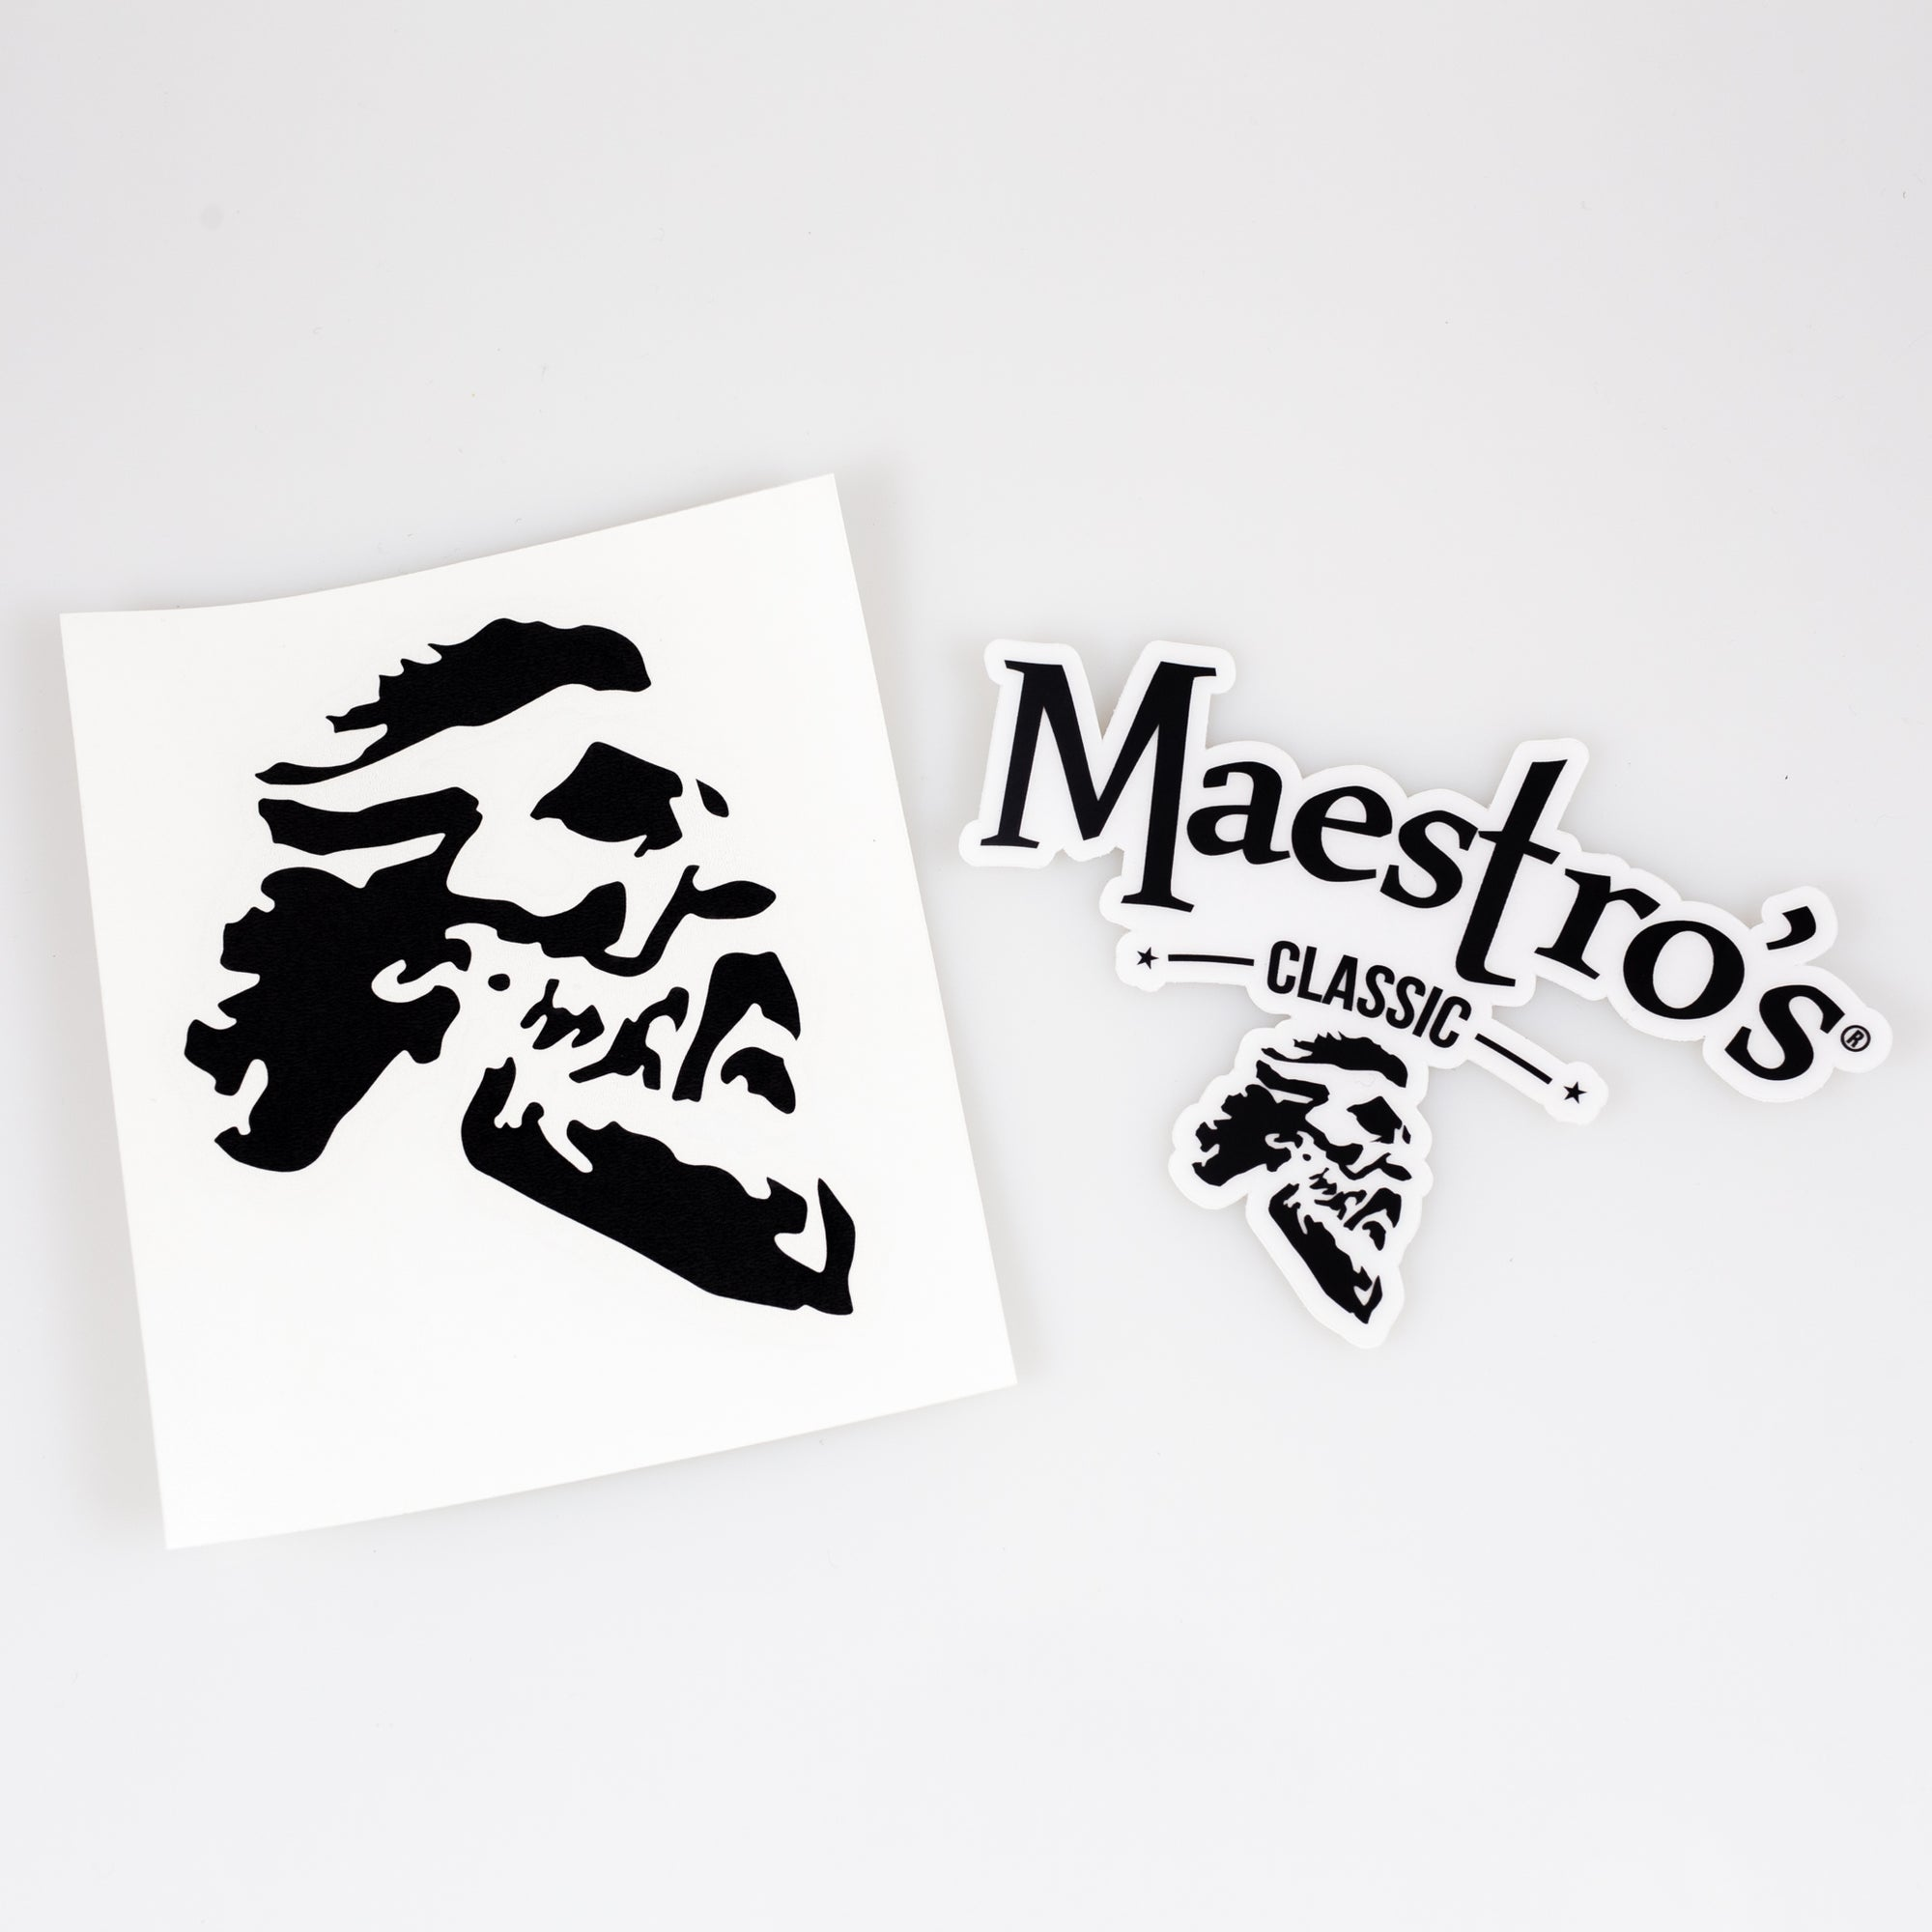 Maestro's Classic- Sticker Pack